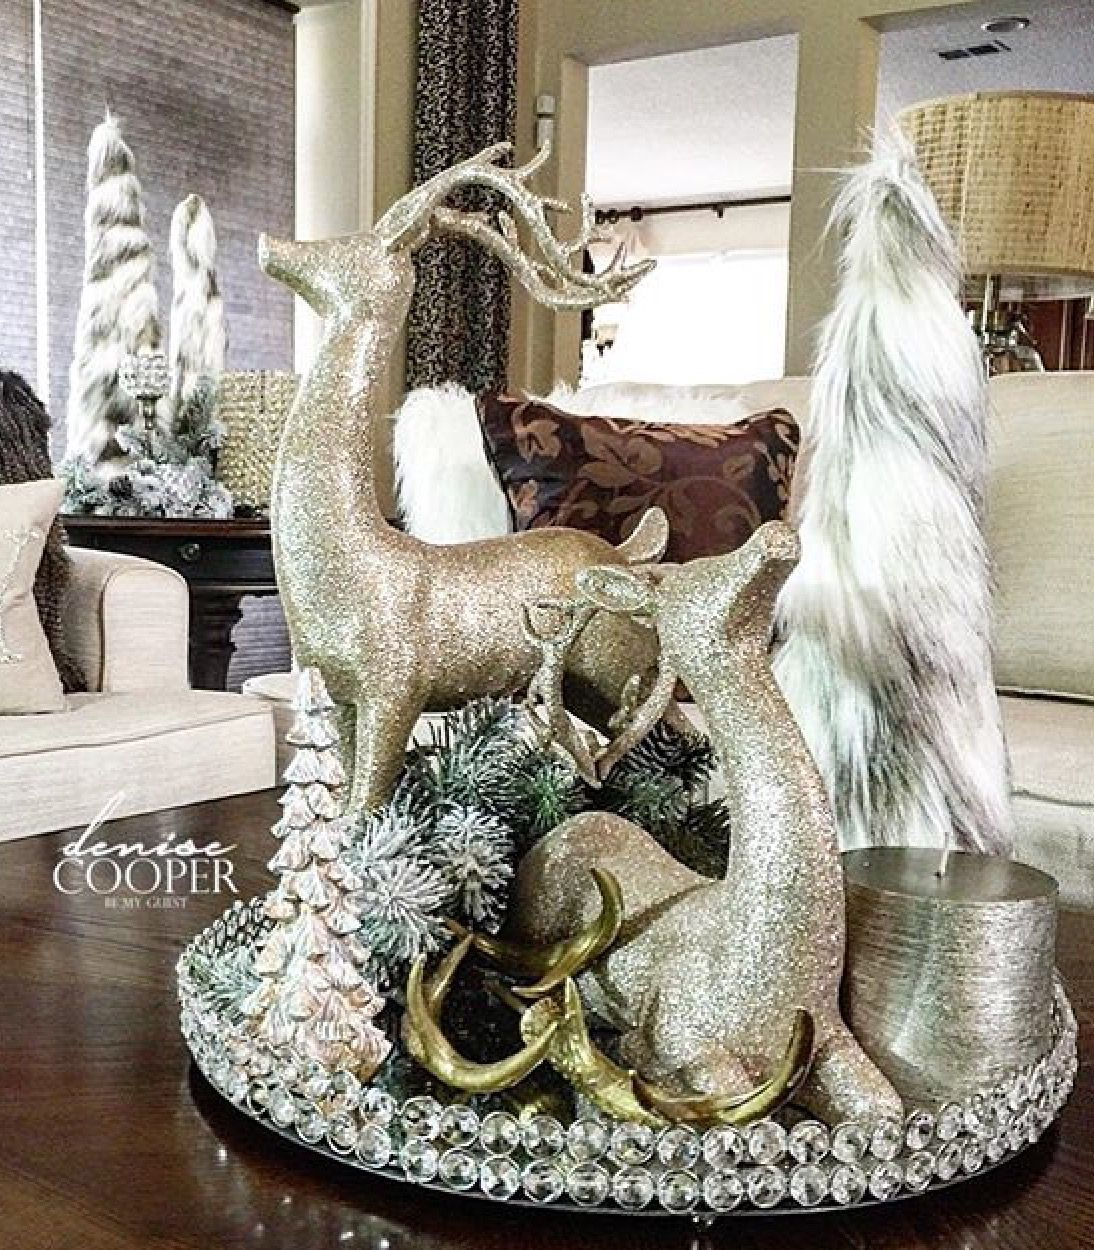 Pin by Sasoky on Christmas trees (With images) | Glam ...